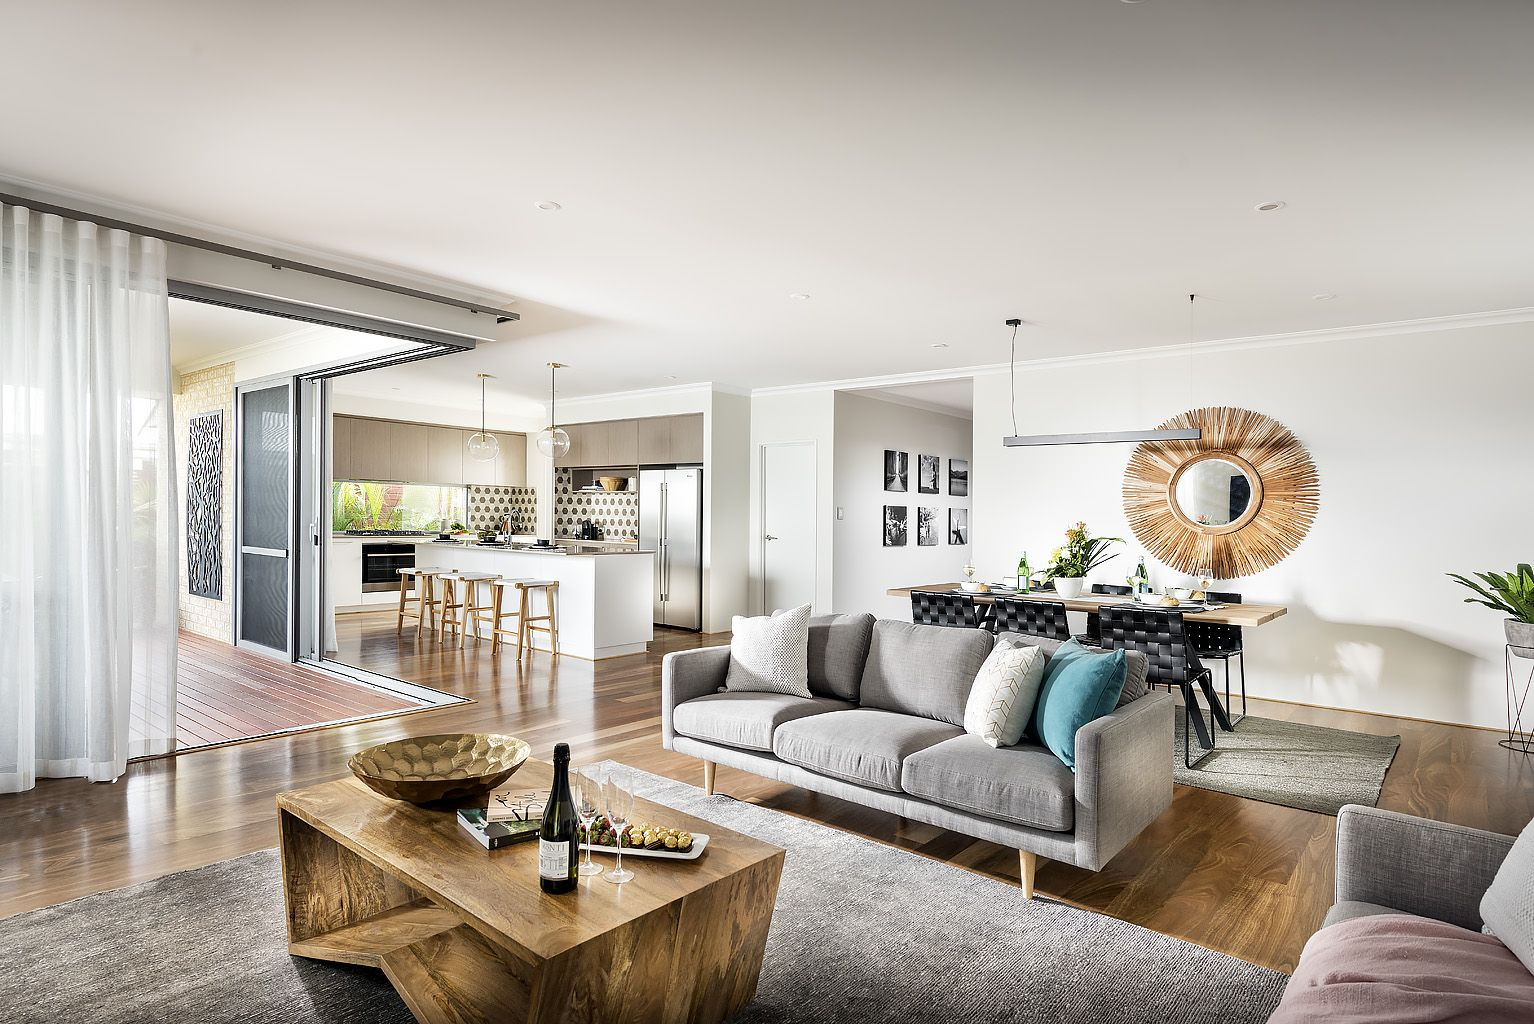 Pin by Ivette Reyes on Inspiration | Pinterest | Perth, Living rooms ...